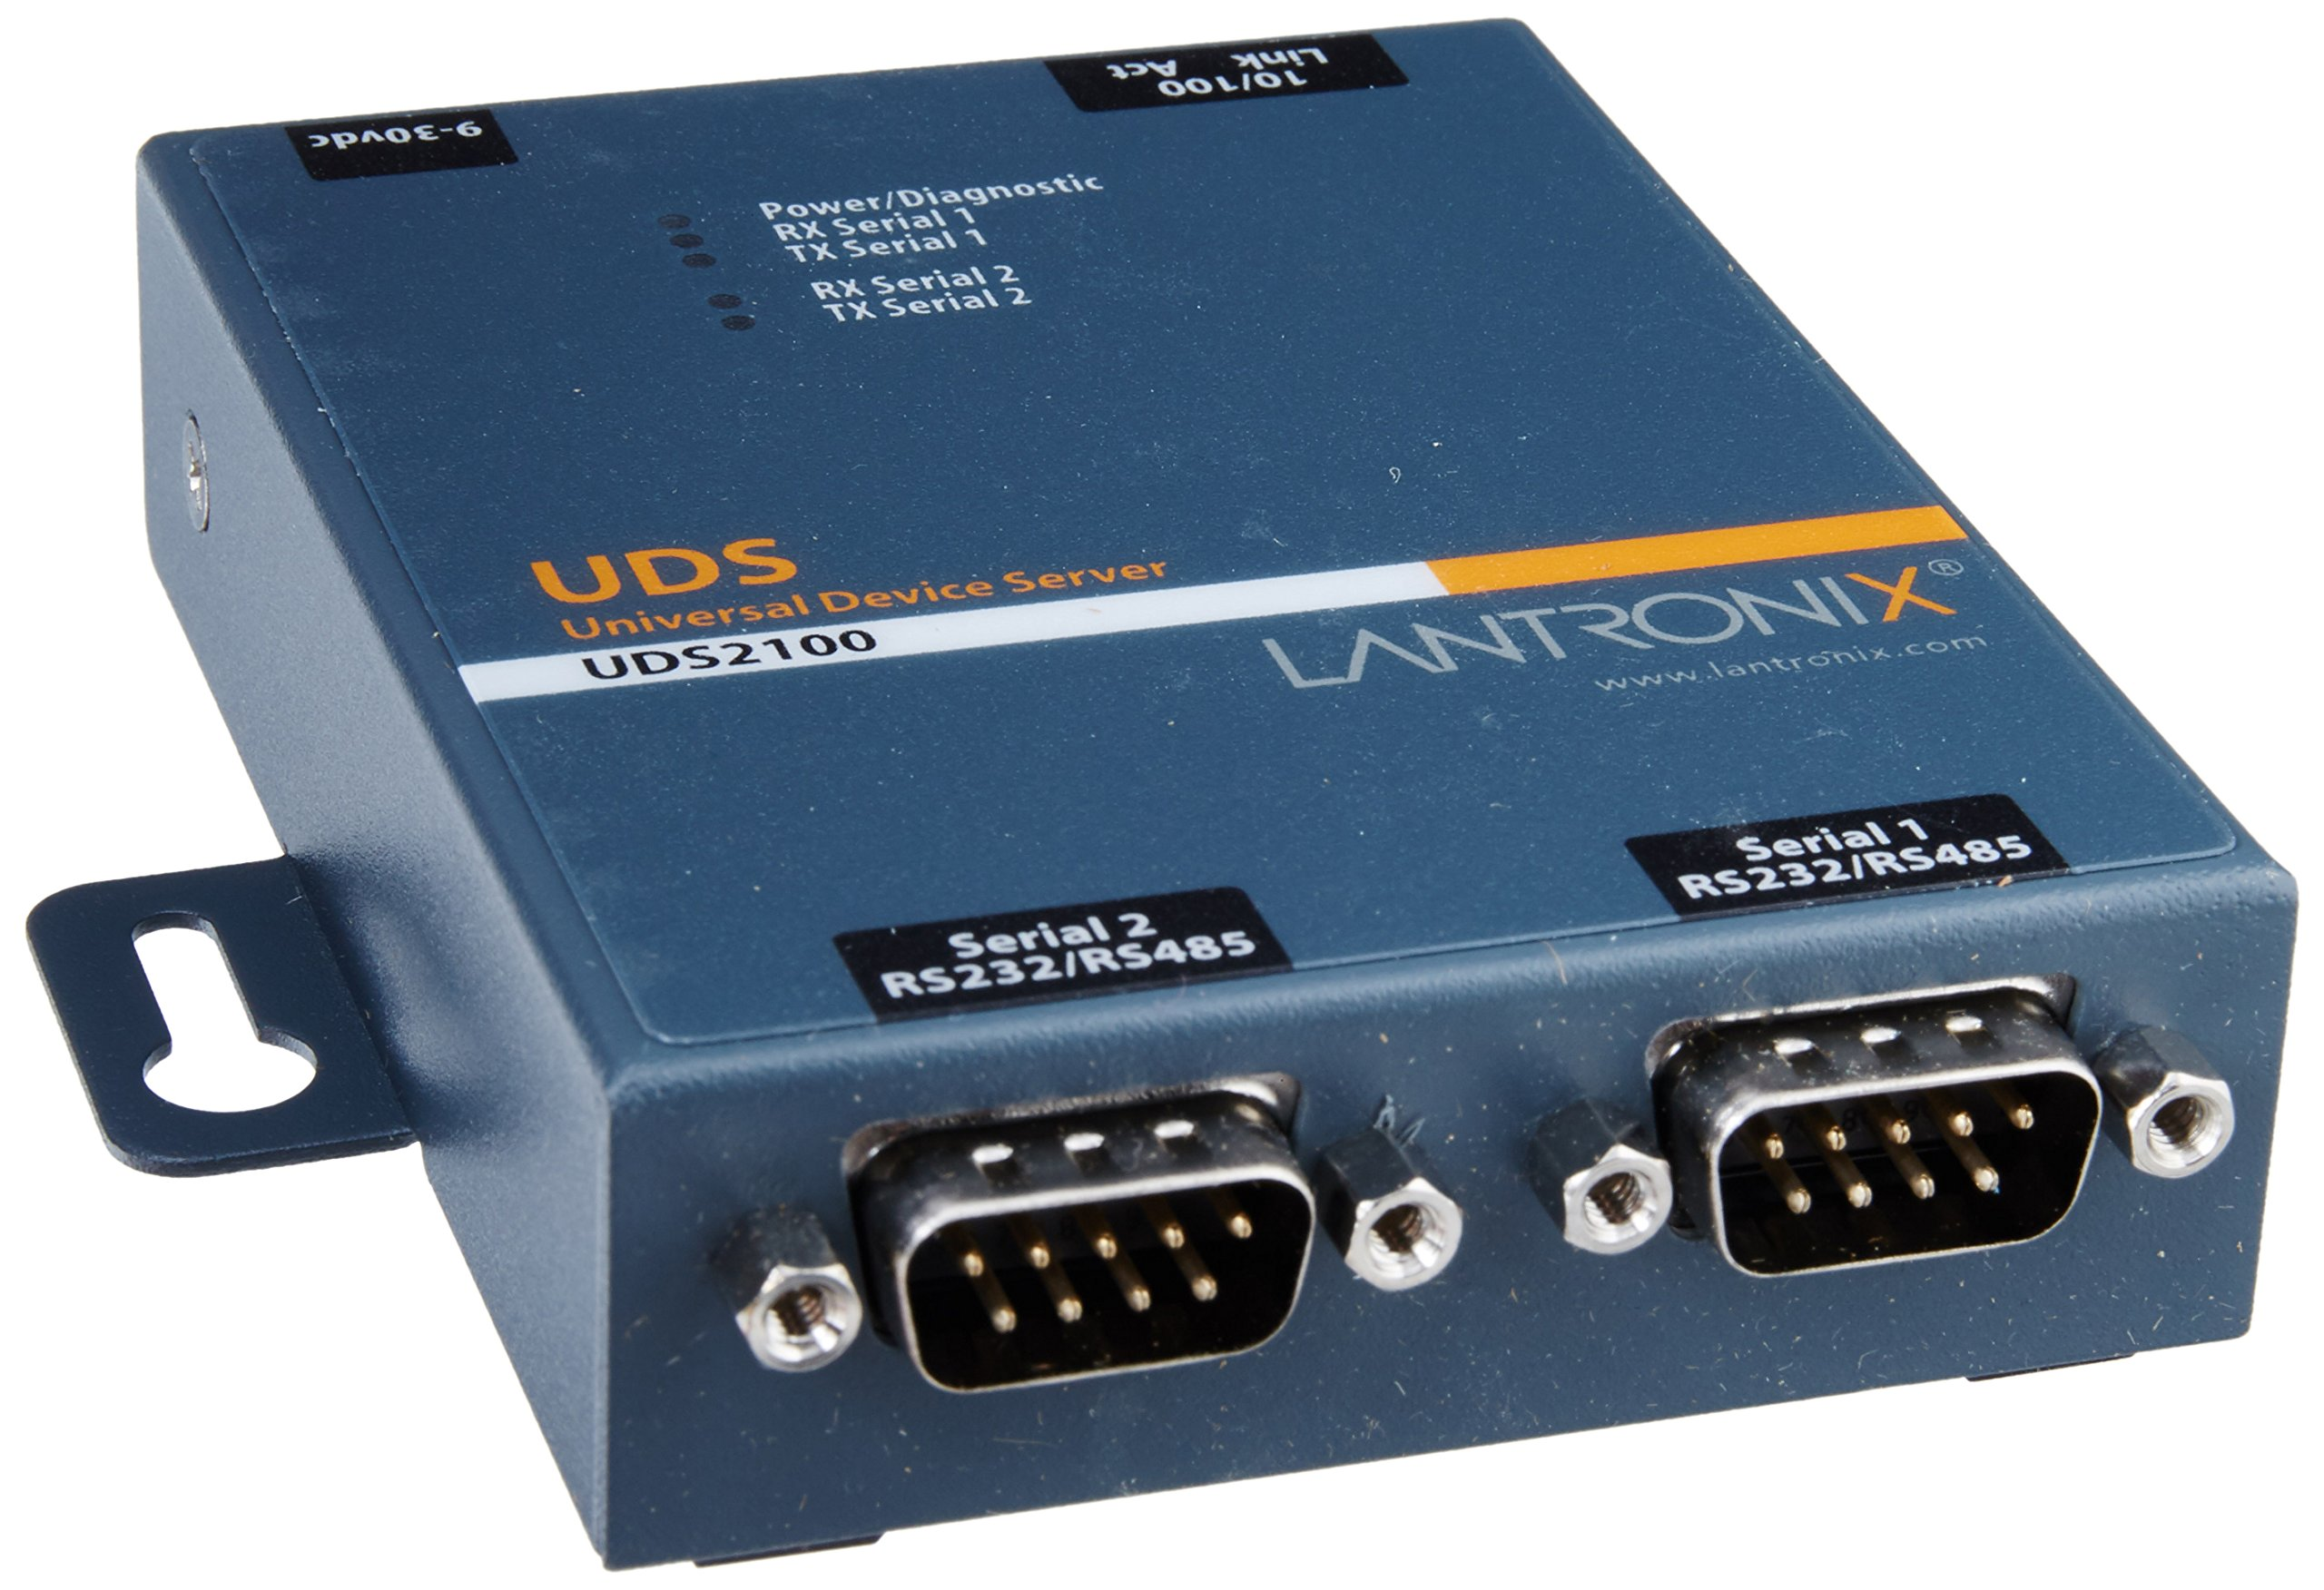 UD2100001-01 Device Server 2PRT 10/100 RS232/422/485 Dom Ps by Lantronix